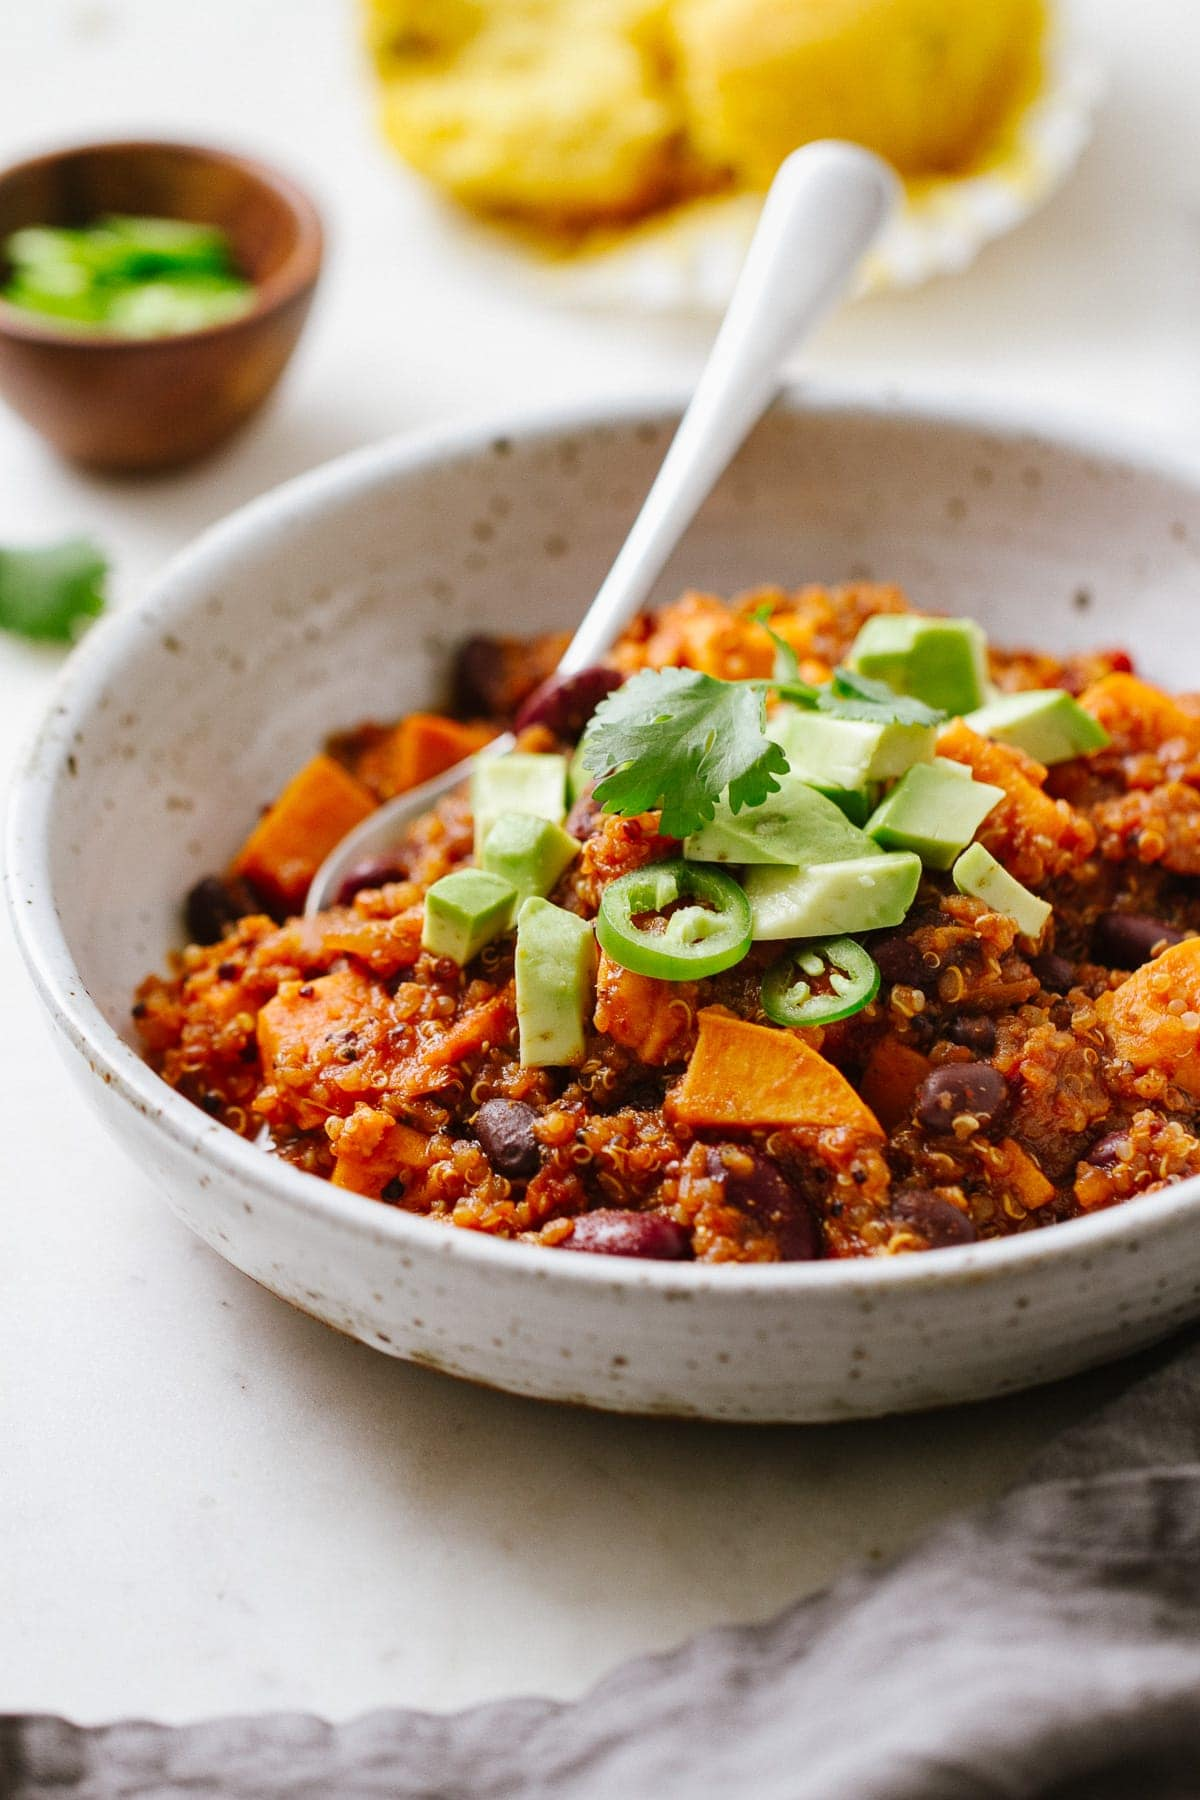 side angle view of a bowl with a serving of healthy vegan sweet potato quinoa chili with spoon.